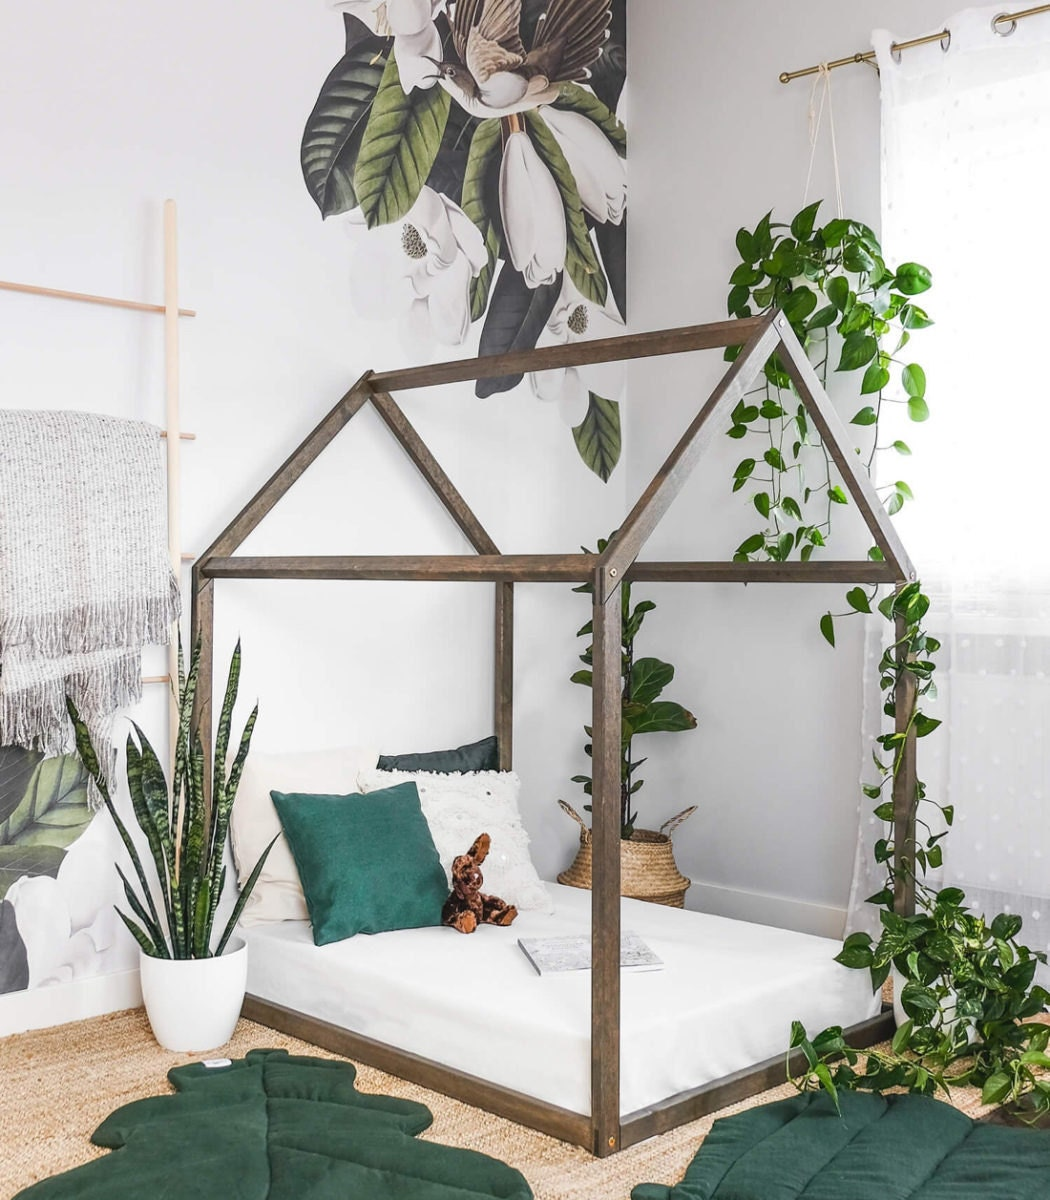 A house-shaped bed frame from KM Designs.